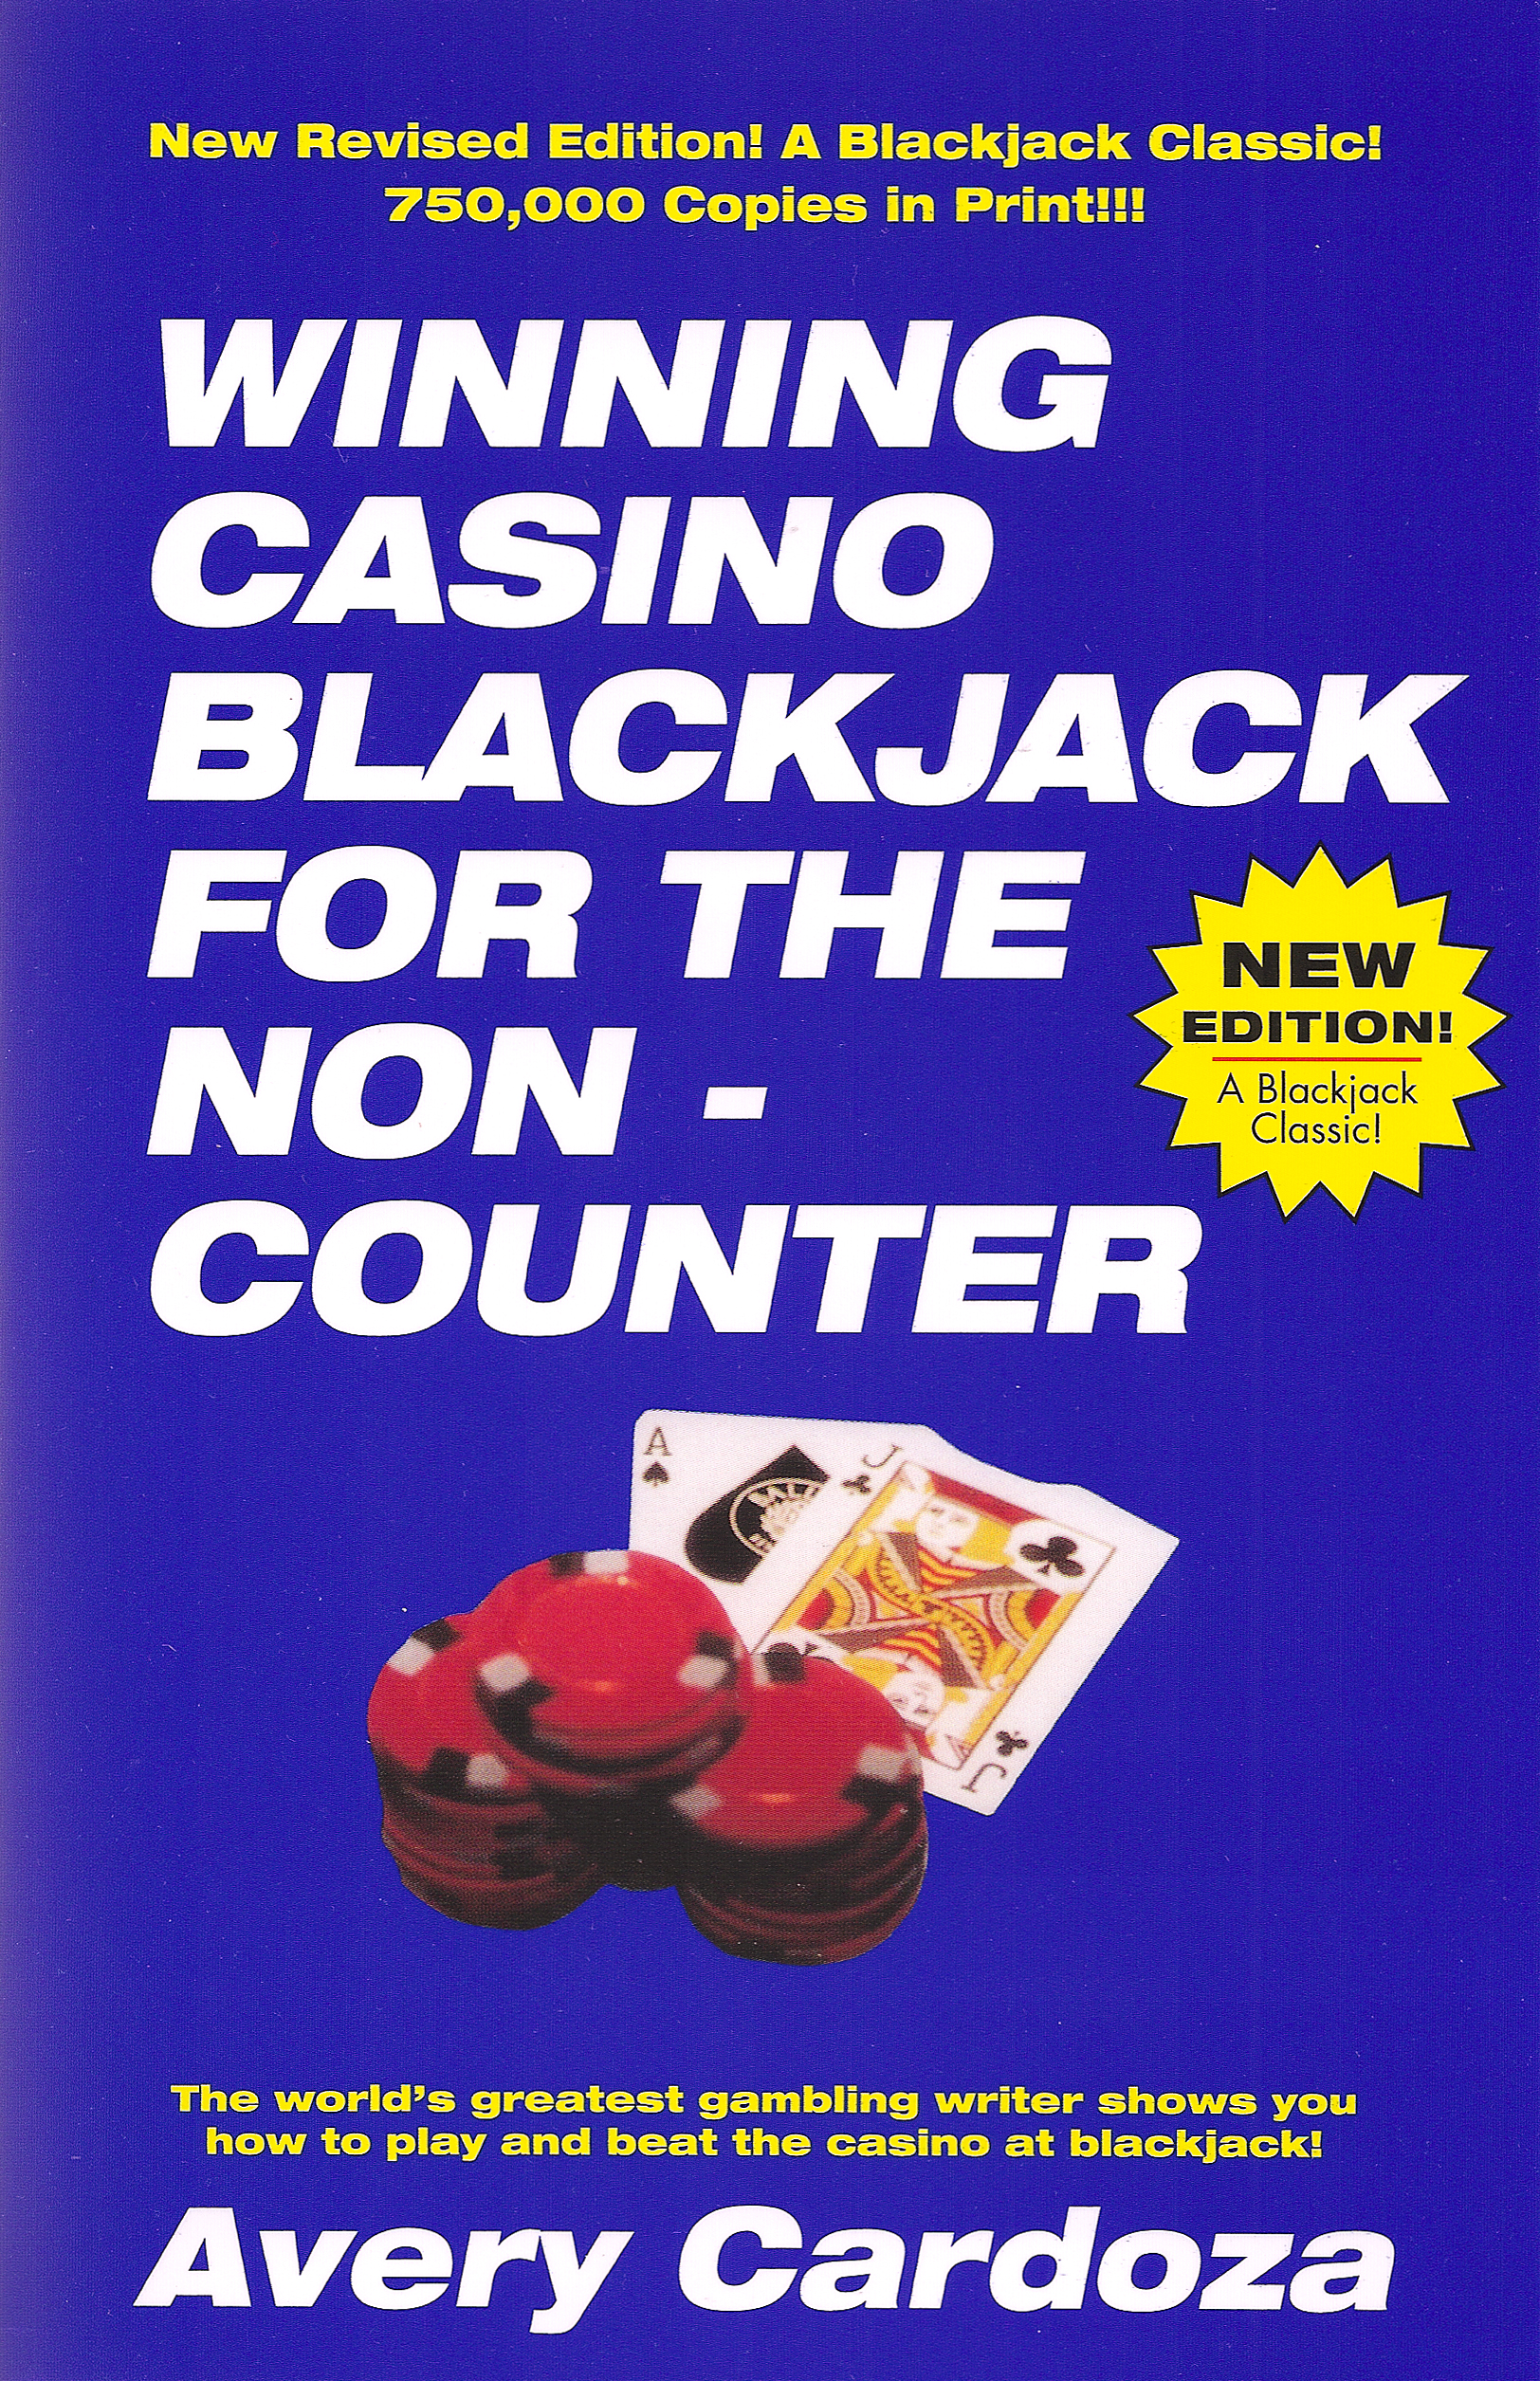 Winning casino blackjack for the non counter the money games casino